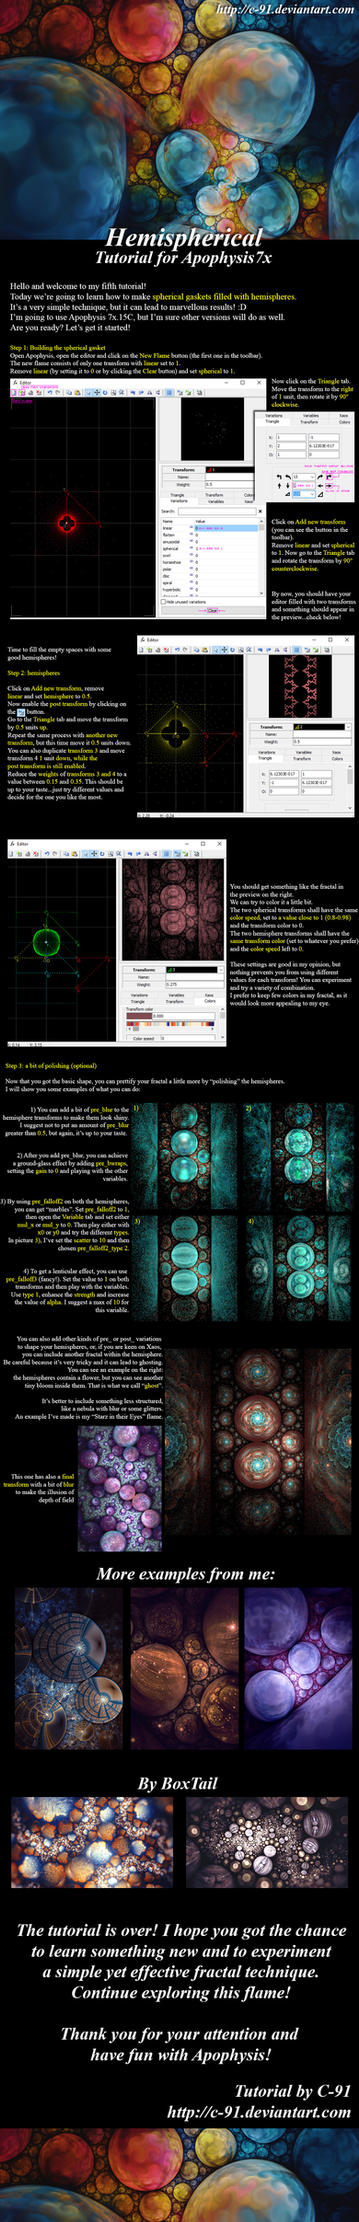 Hemispherical Apophysis Tutorial by C-91